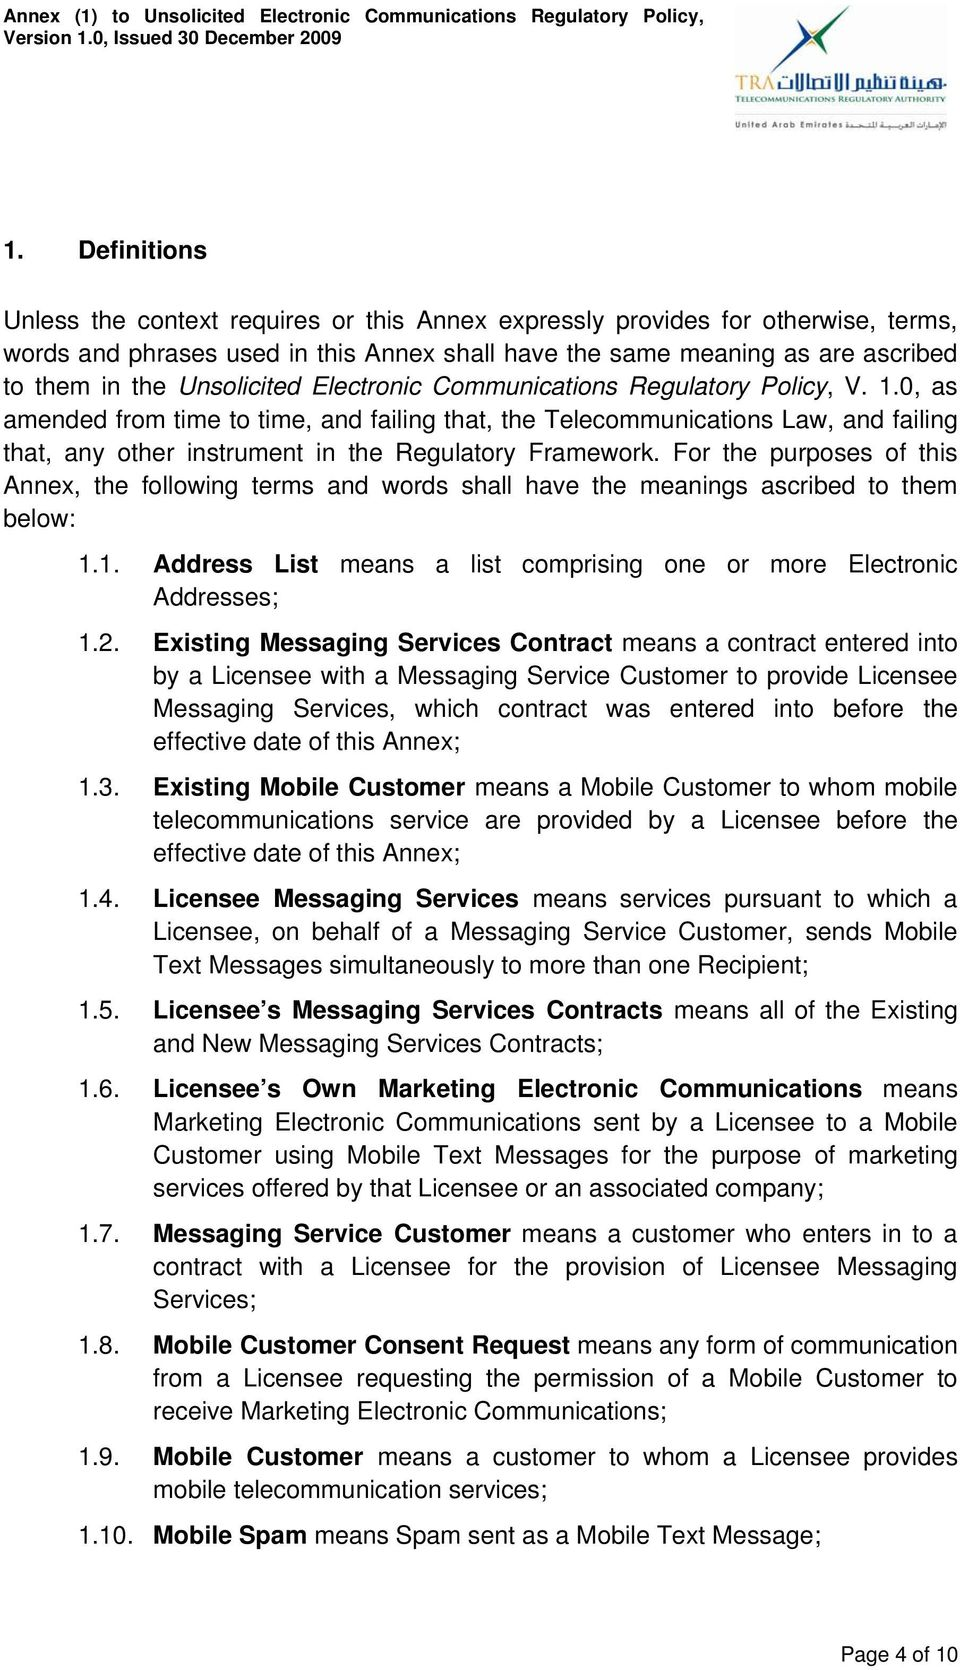 Unsolicited Electronic Communications Regulatory Policy, V. 1.